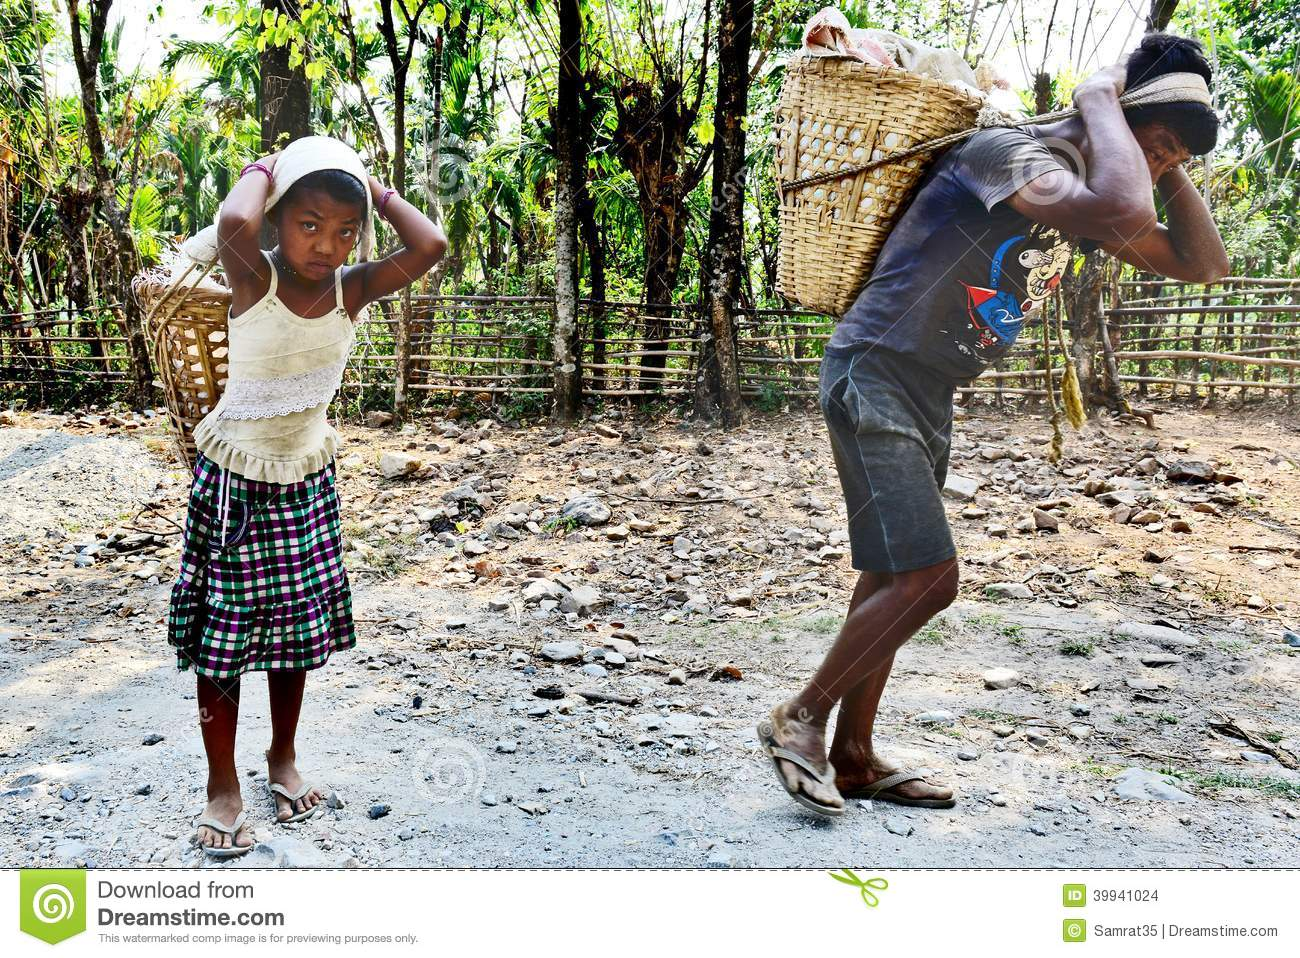 India's Most Primitive Tribes Editorial Stock Image - Image: 39941024